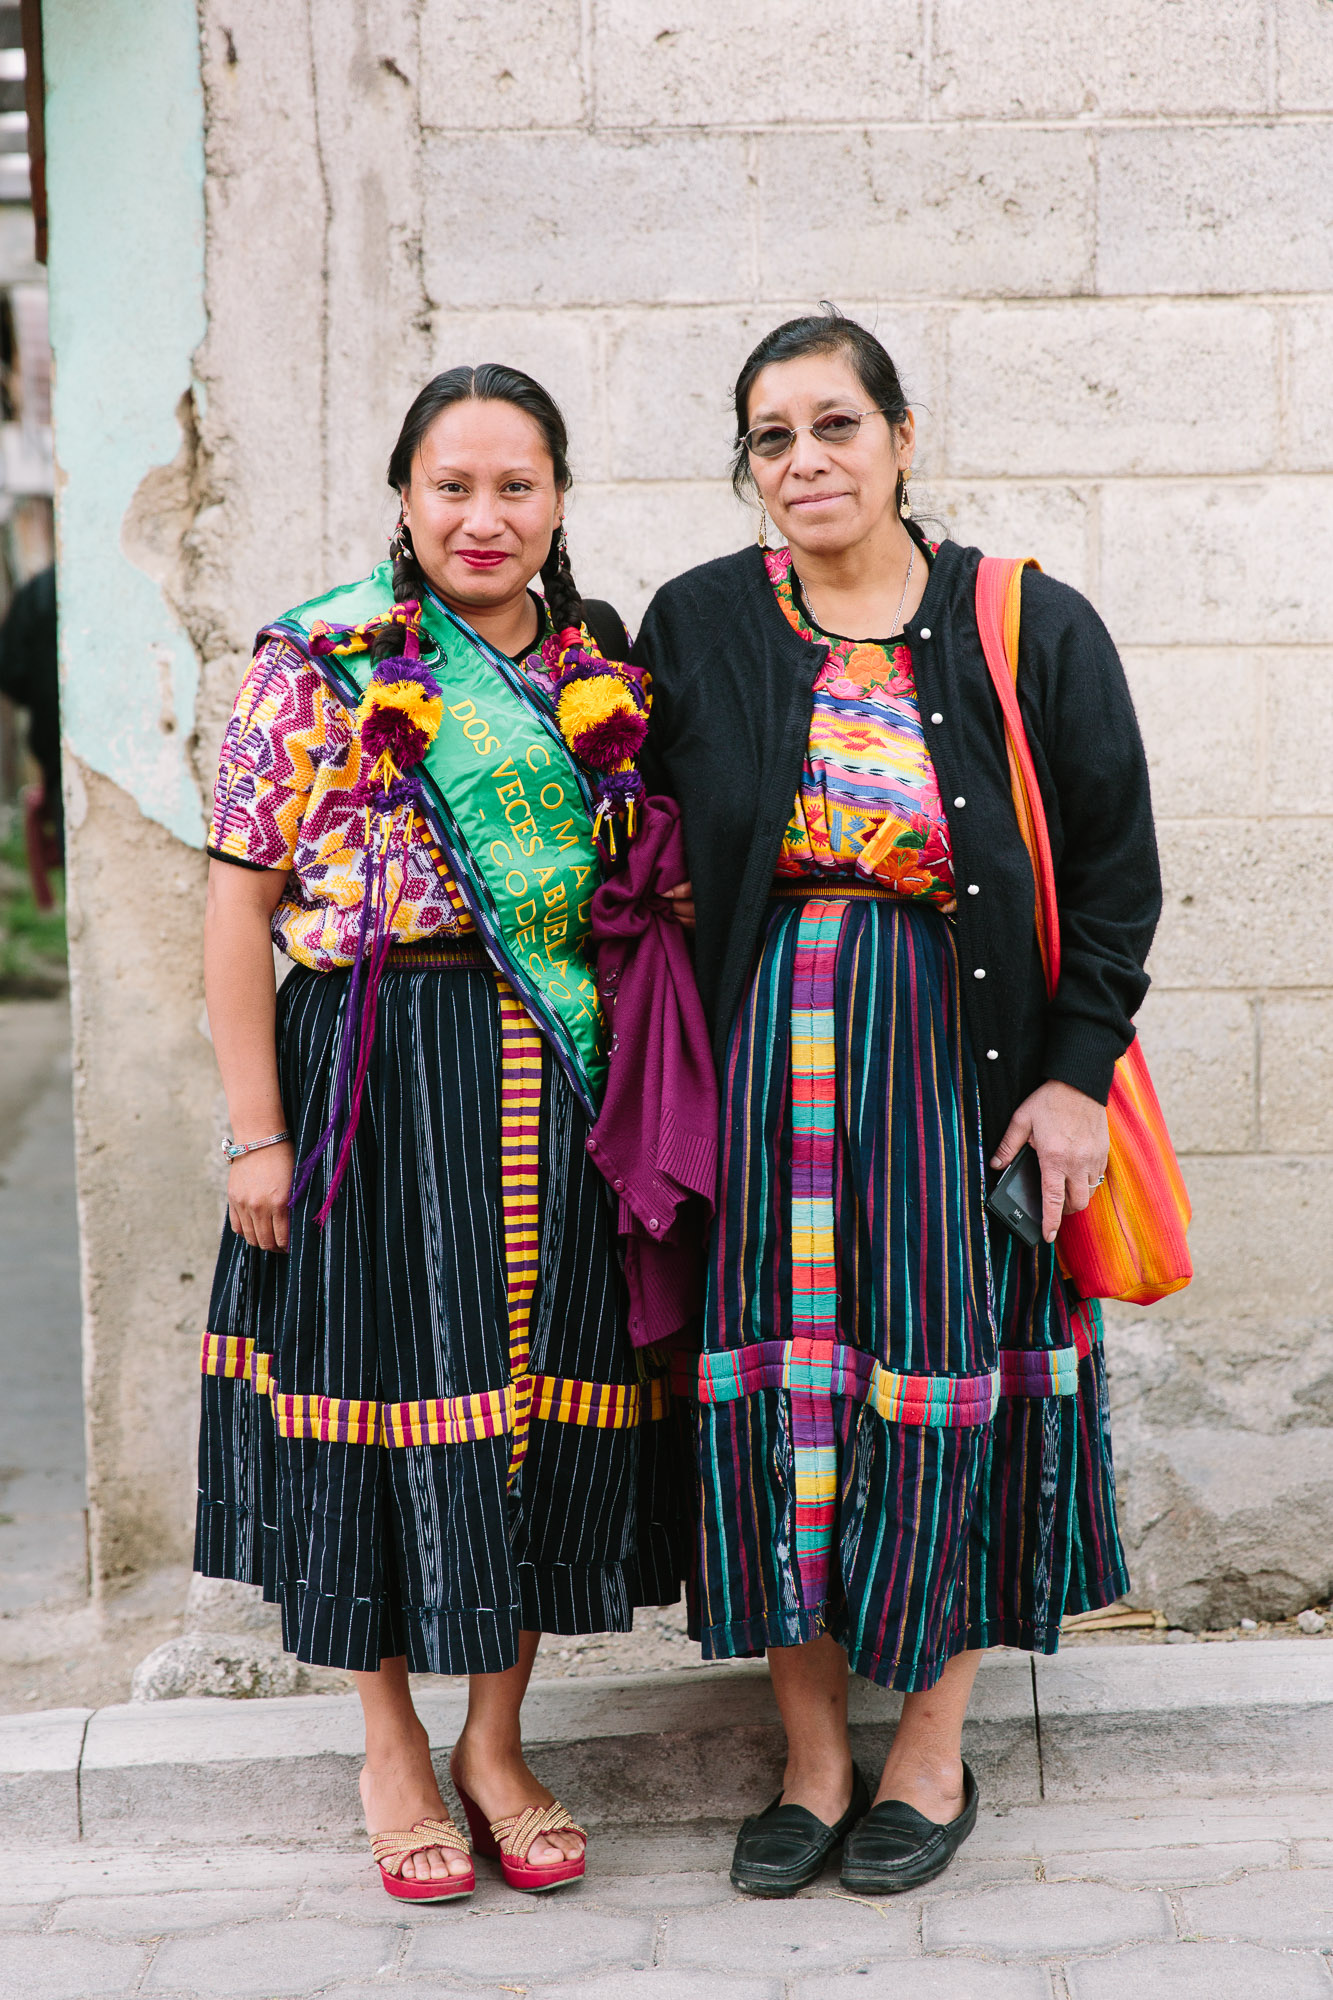 guatemala-christine-han-photography-104.jpg